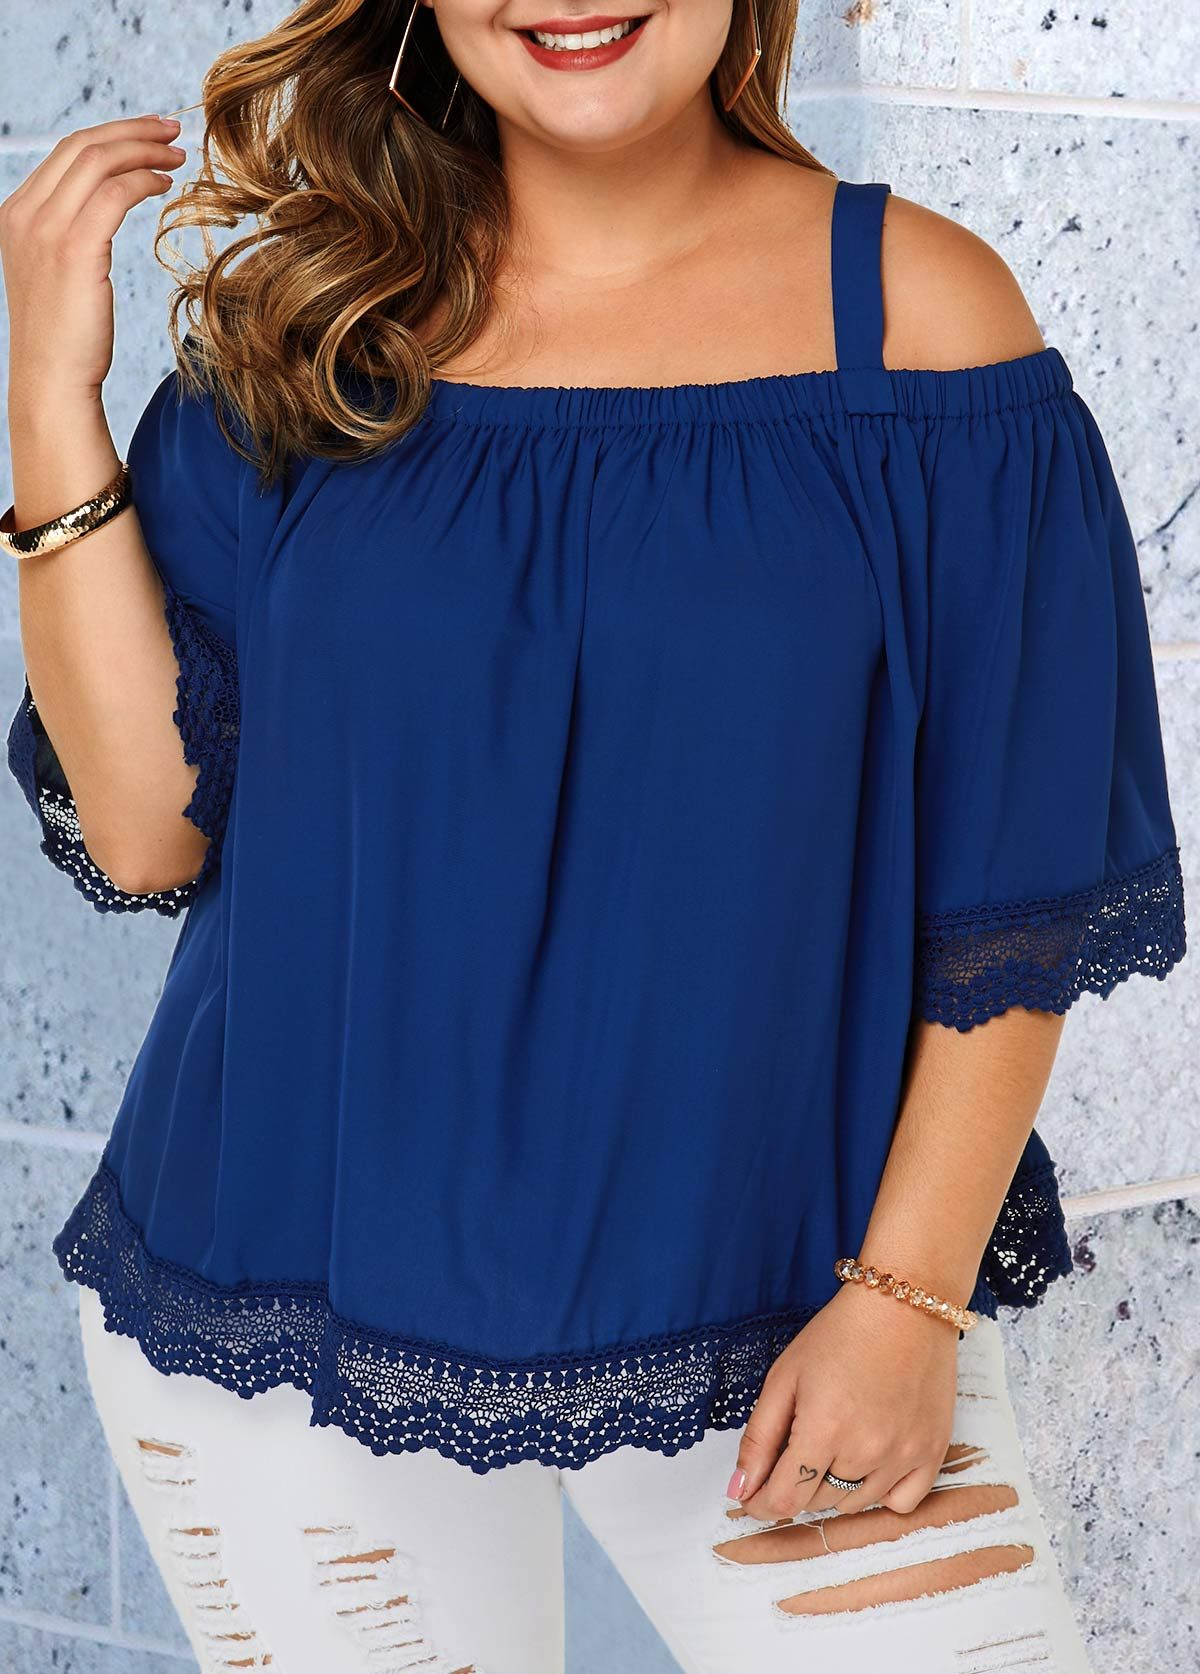 Plus Size Navy Blue Strappy Cold Shoulder Blouse | Rosewe.com - USD $28.03 2